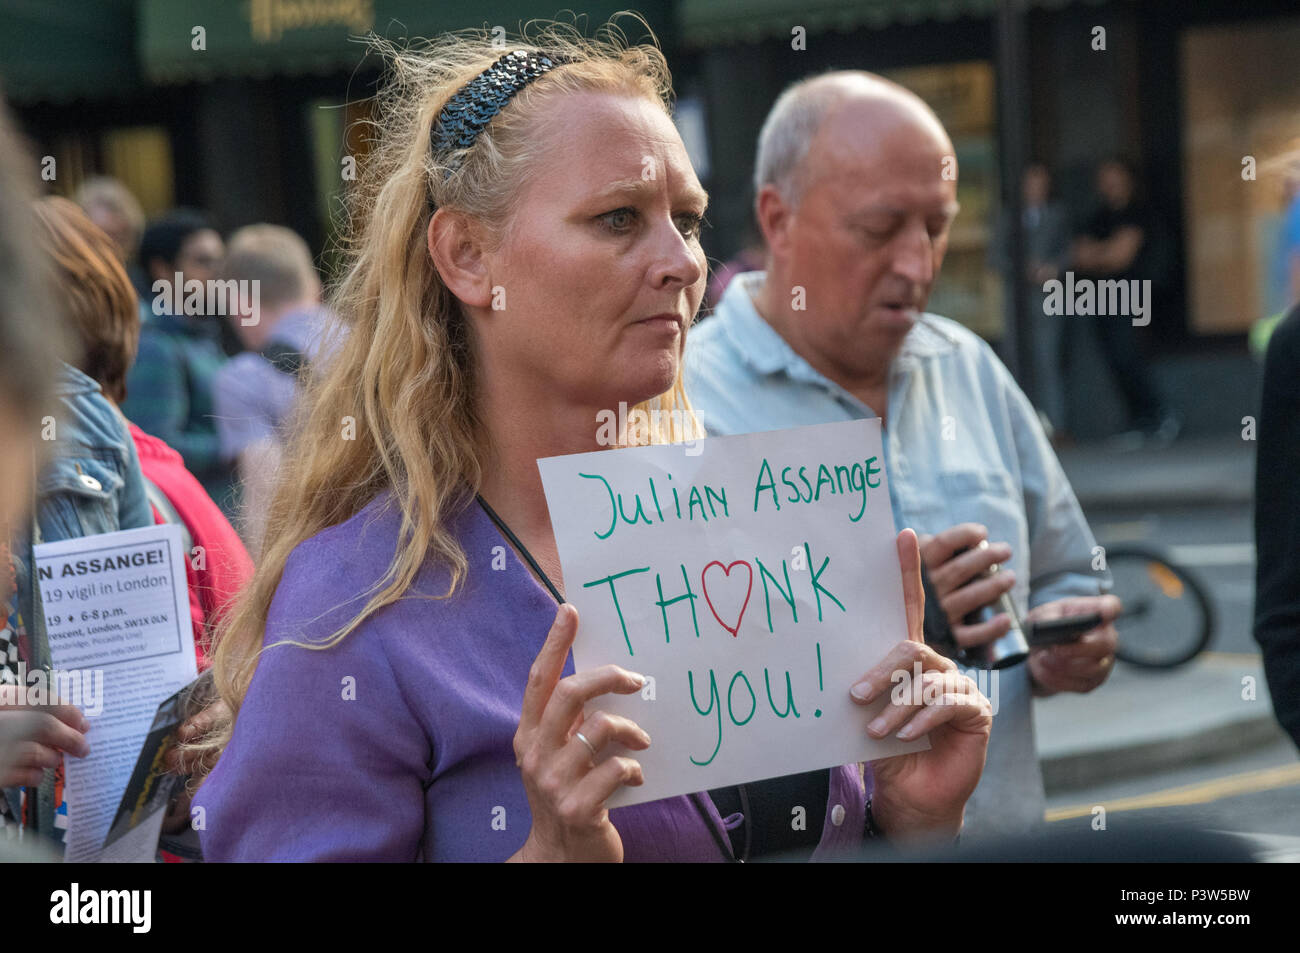 London, UK. 19th June 2018. A woman holds a small poster 'Julian Assange Thank you !' at the rally outside the Ecuadorian Embassy in London calling for Julian Assange to be allowed safe passage to the place of his choice to mark six years since he was given asylum there. They called for the UK authorities to allow him to leave the embassy and go to the country of his choice without being arrested. Credit: Peter Marshall/Alamy Live News - Stock Image